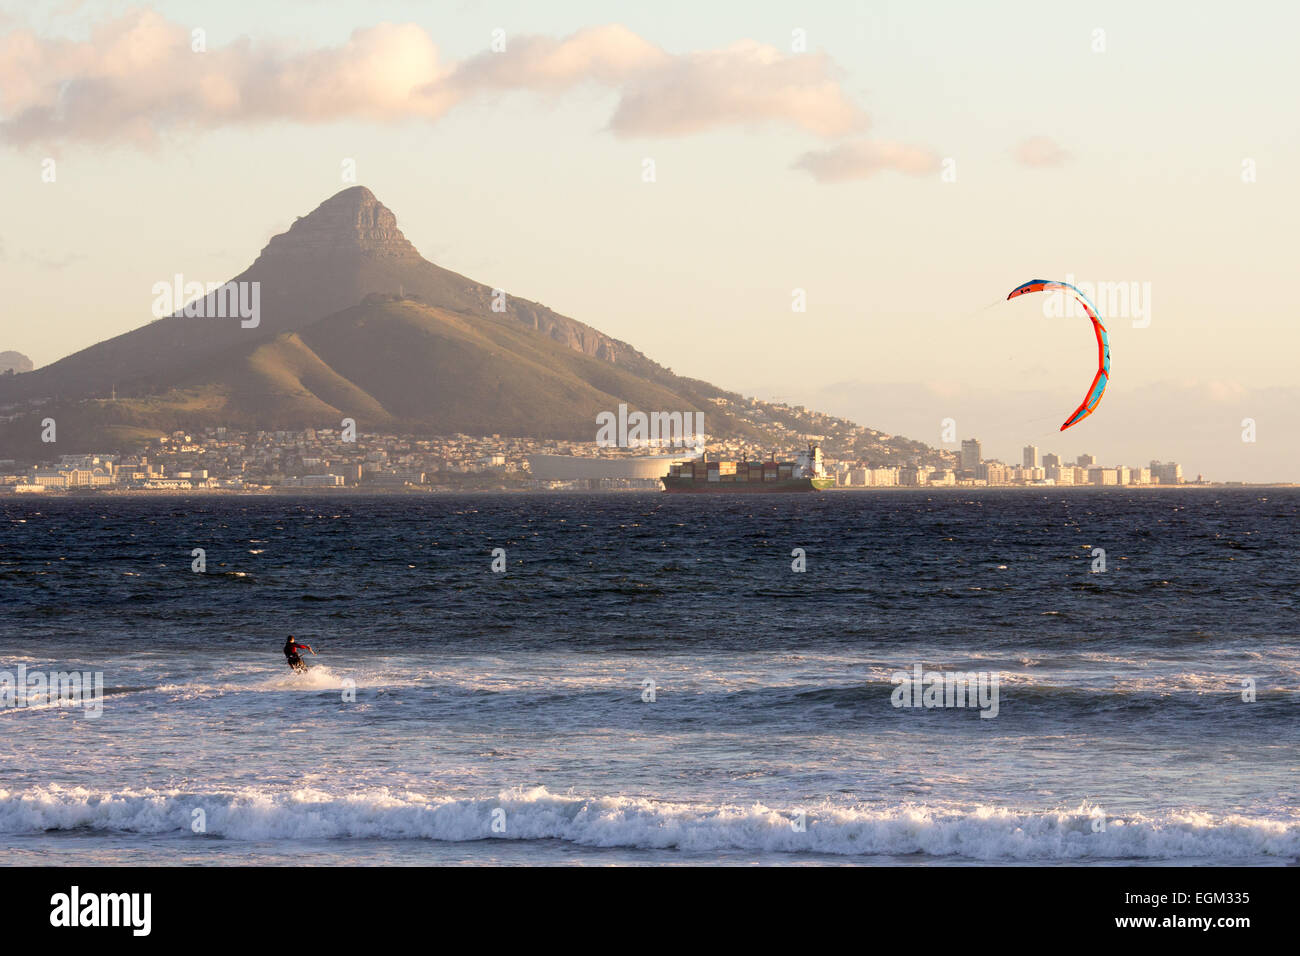 Windsurfing in Cape Town - Stock Image